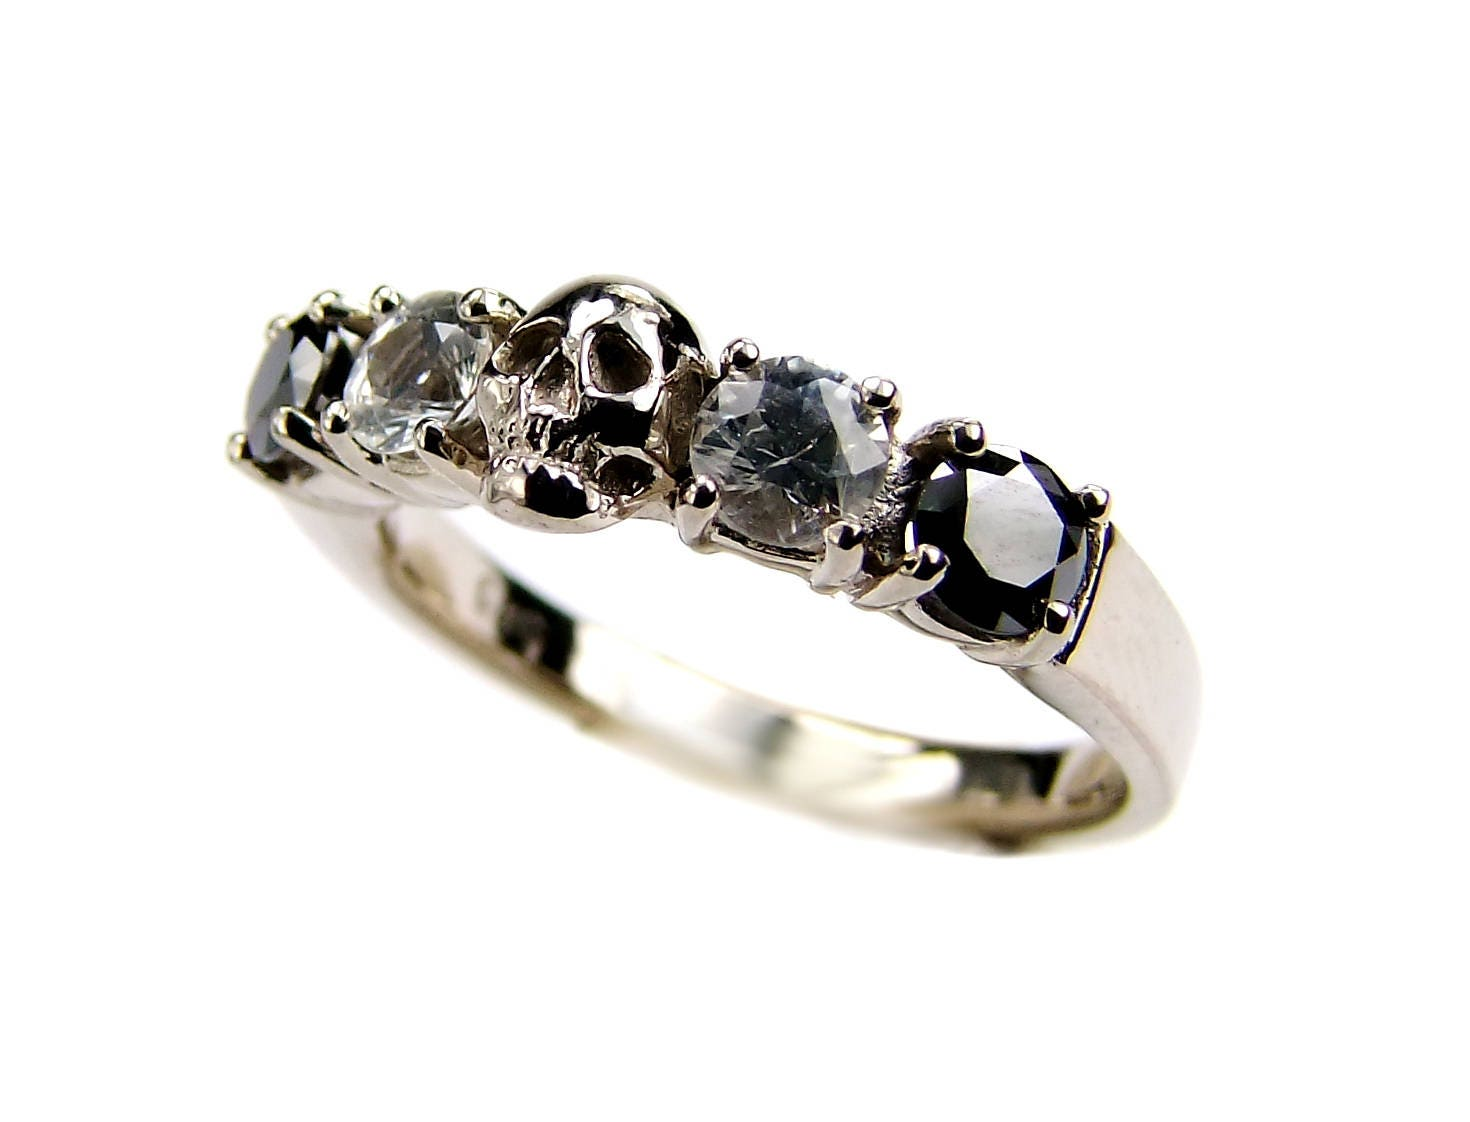 White Gold Skull Wedding Set Ring Black Diamond Sapphire Engagement Goth Psychobilly Band Jewel All Sizes